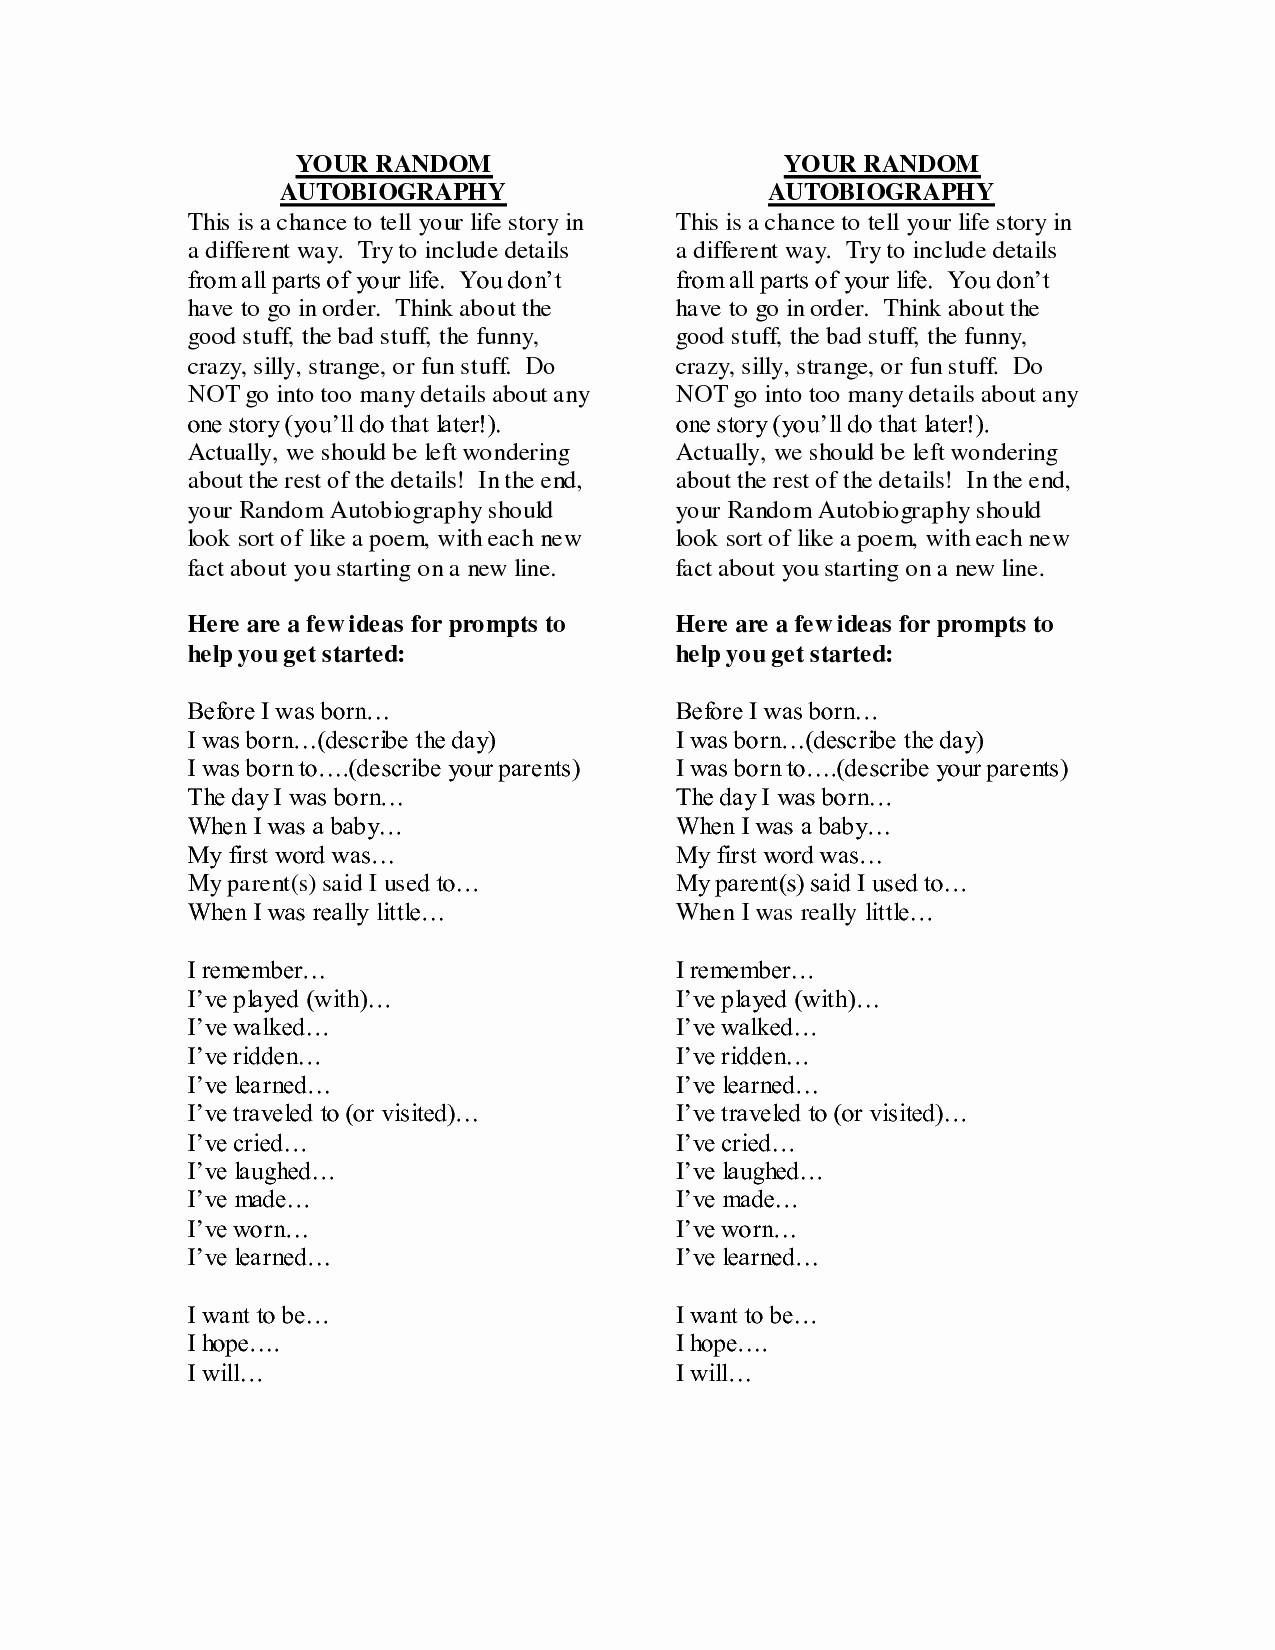 I Am Poem Template Pdf Elegant Blog And Provided You With